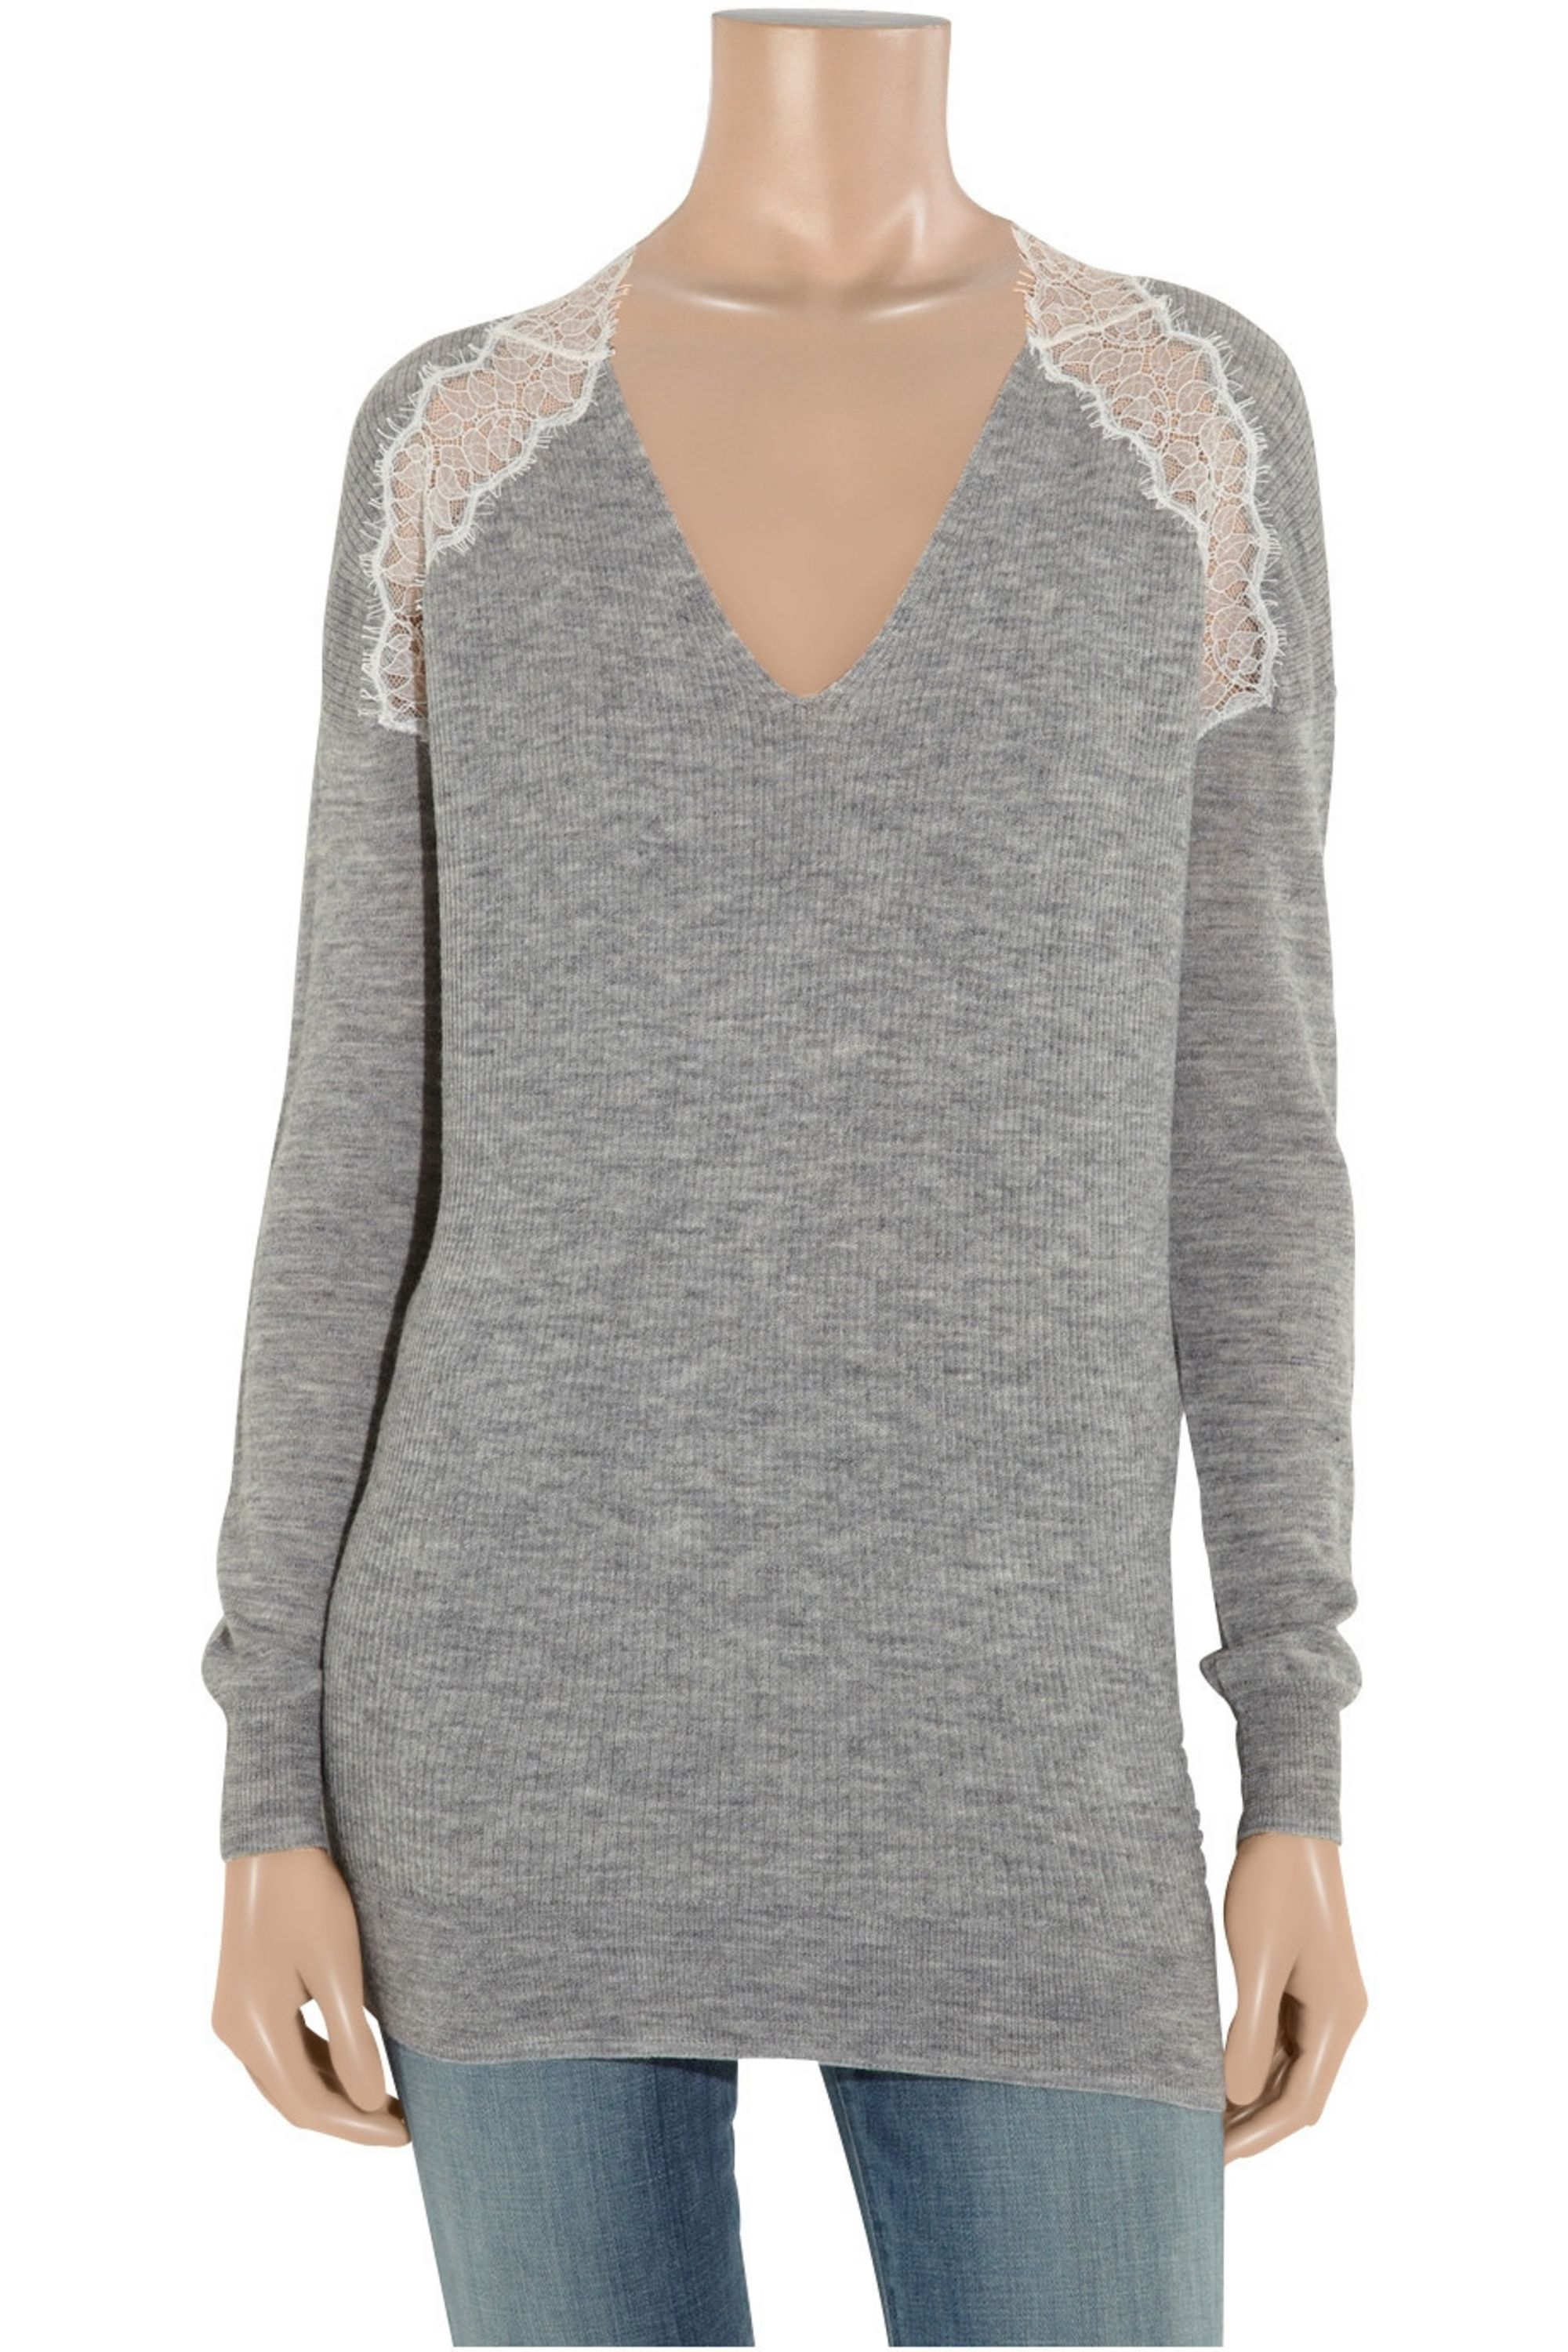 Rebecca Taylor Lace-trimmed knitted sweater